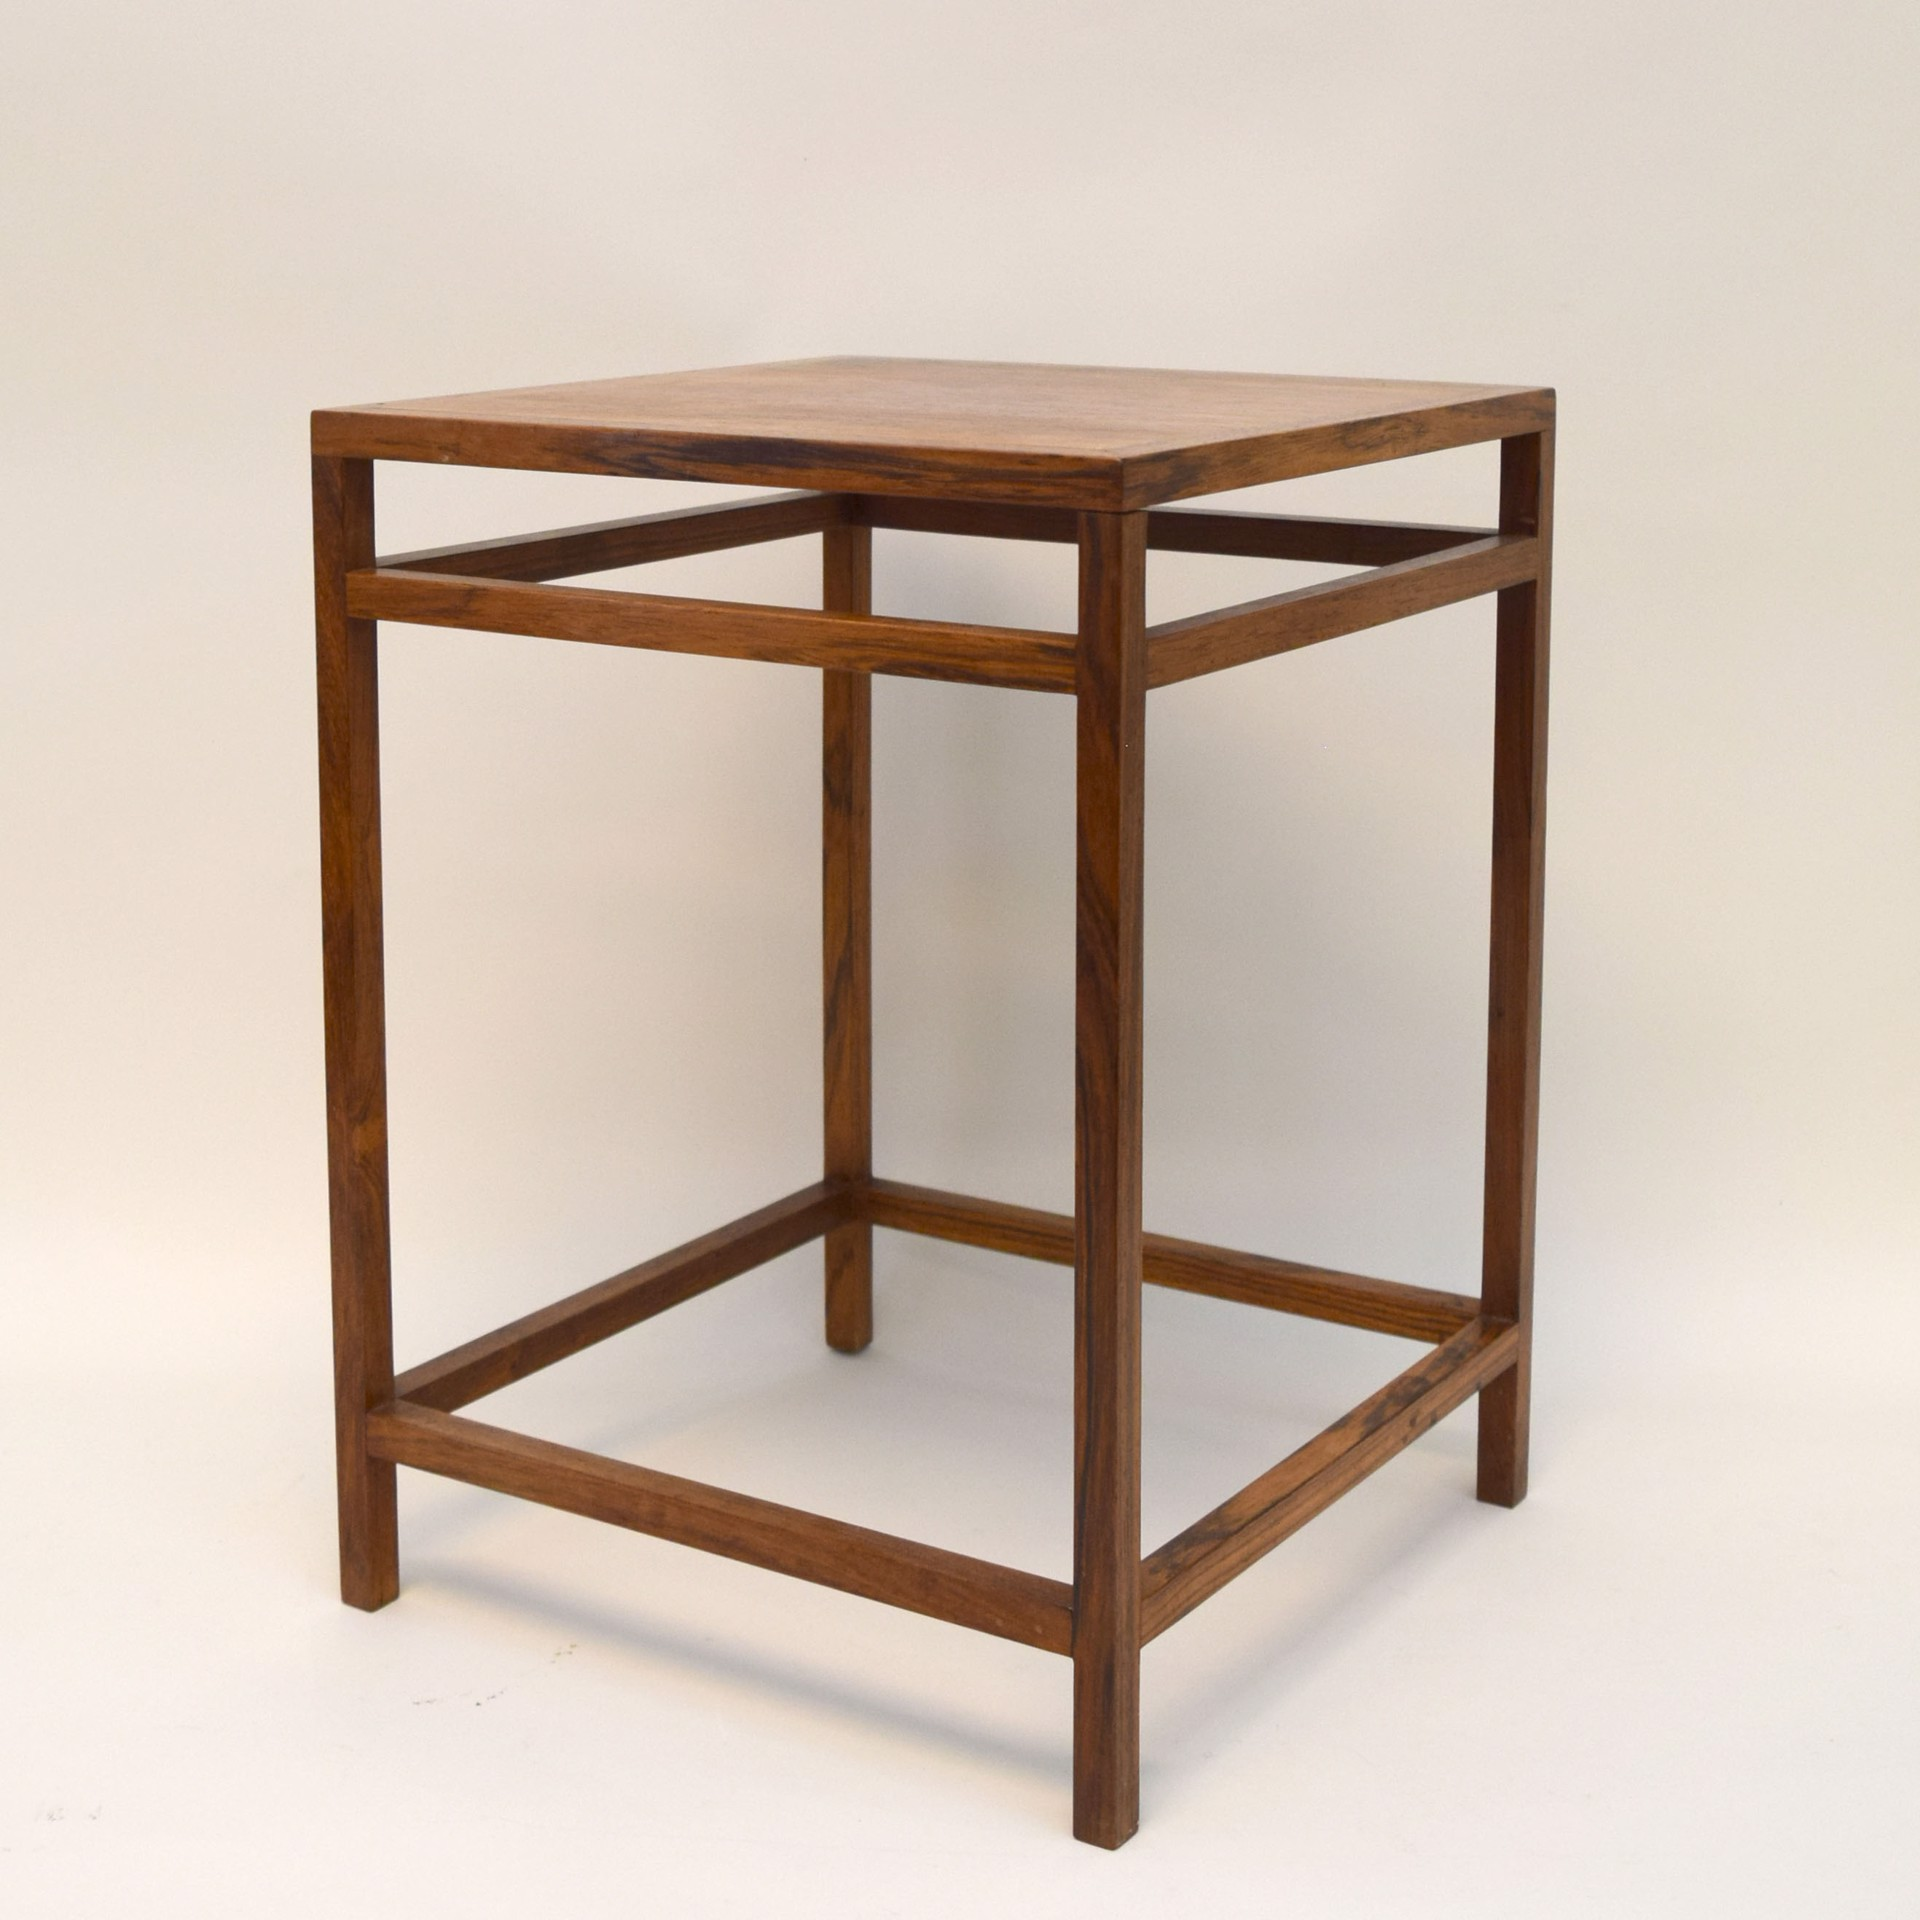 SMALL SIDE TABLE DESIGNED BY EJNER LARSEN & AKSEL BENDER MADSEN FOR WILLY BECK